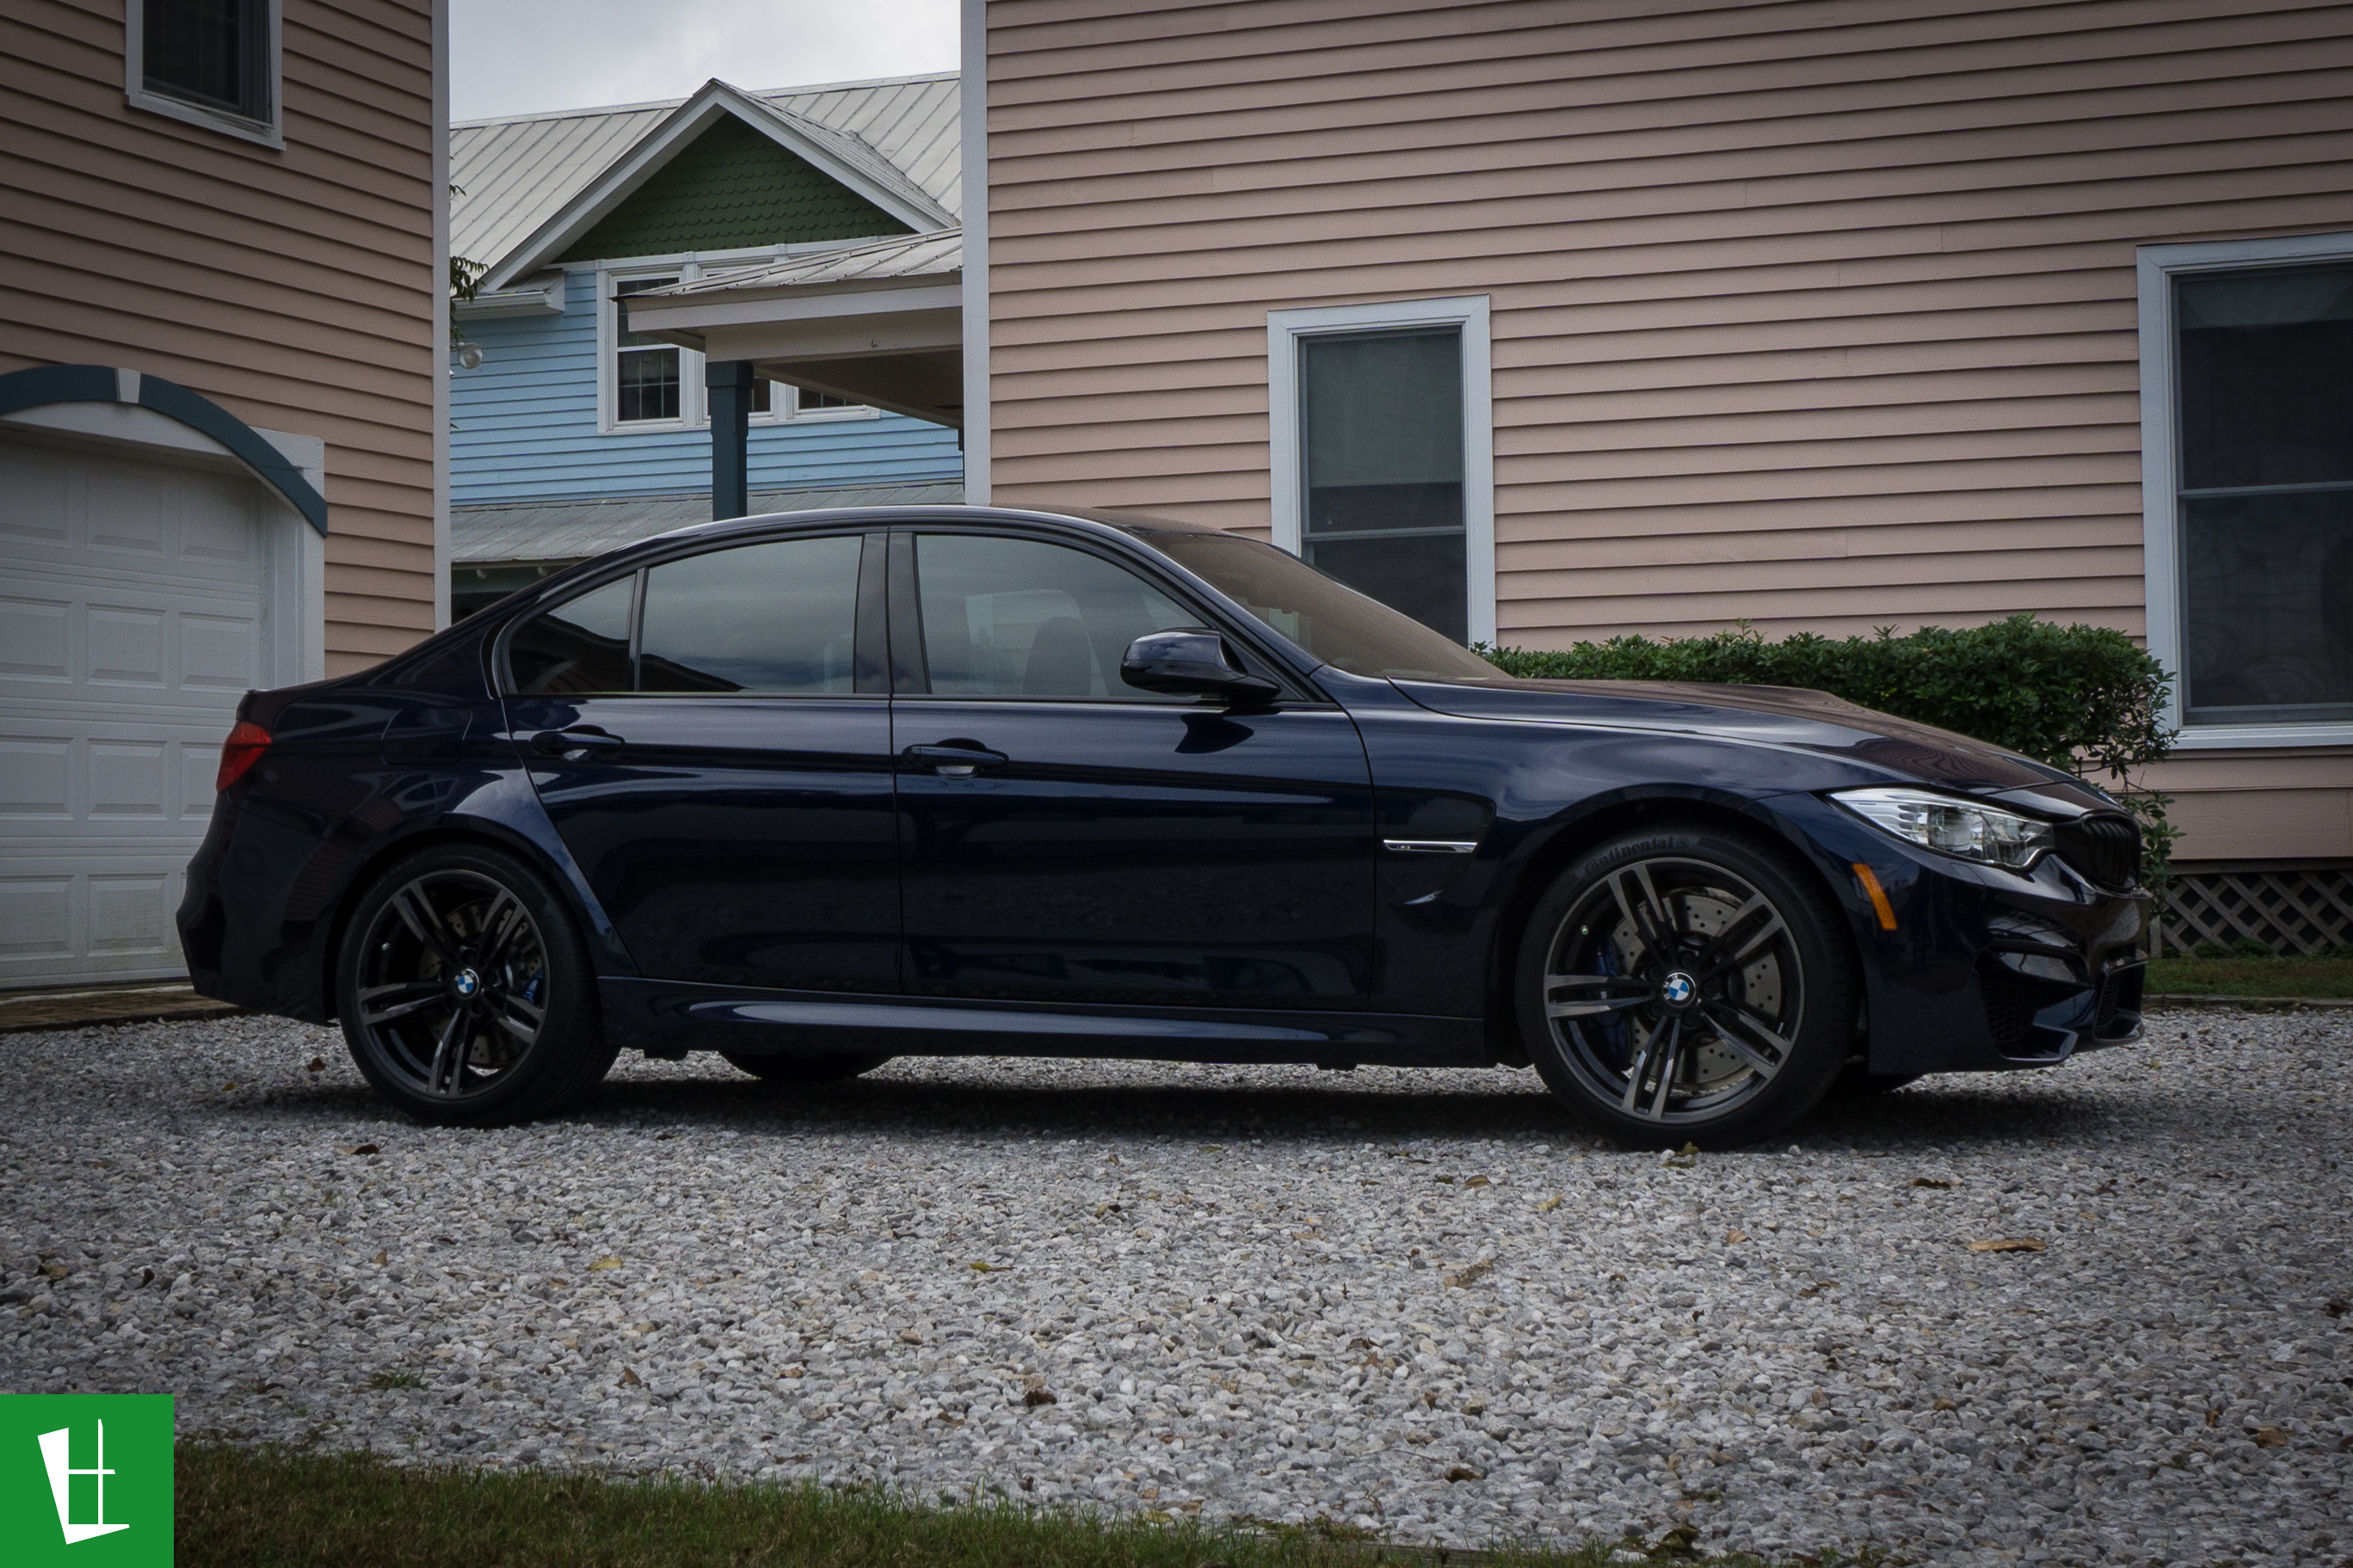 Bmw M Window Tinting moreover Nissan Maxima in addition Bmw M Sedan Window Tinting additionally Photo moreover Bmw M Window Tinting. on 2015 bmw 328i sedan